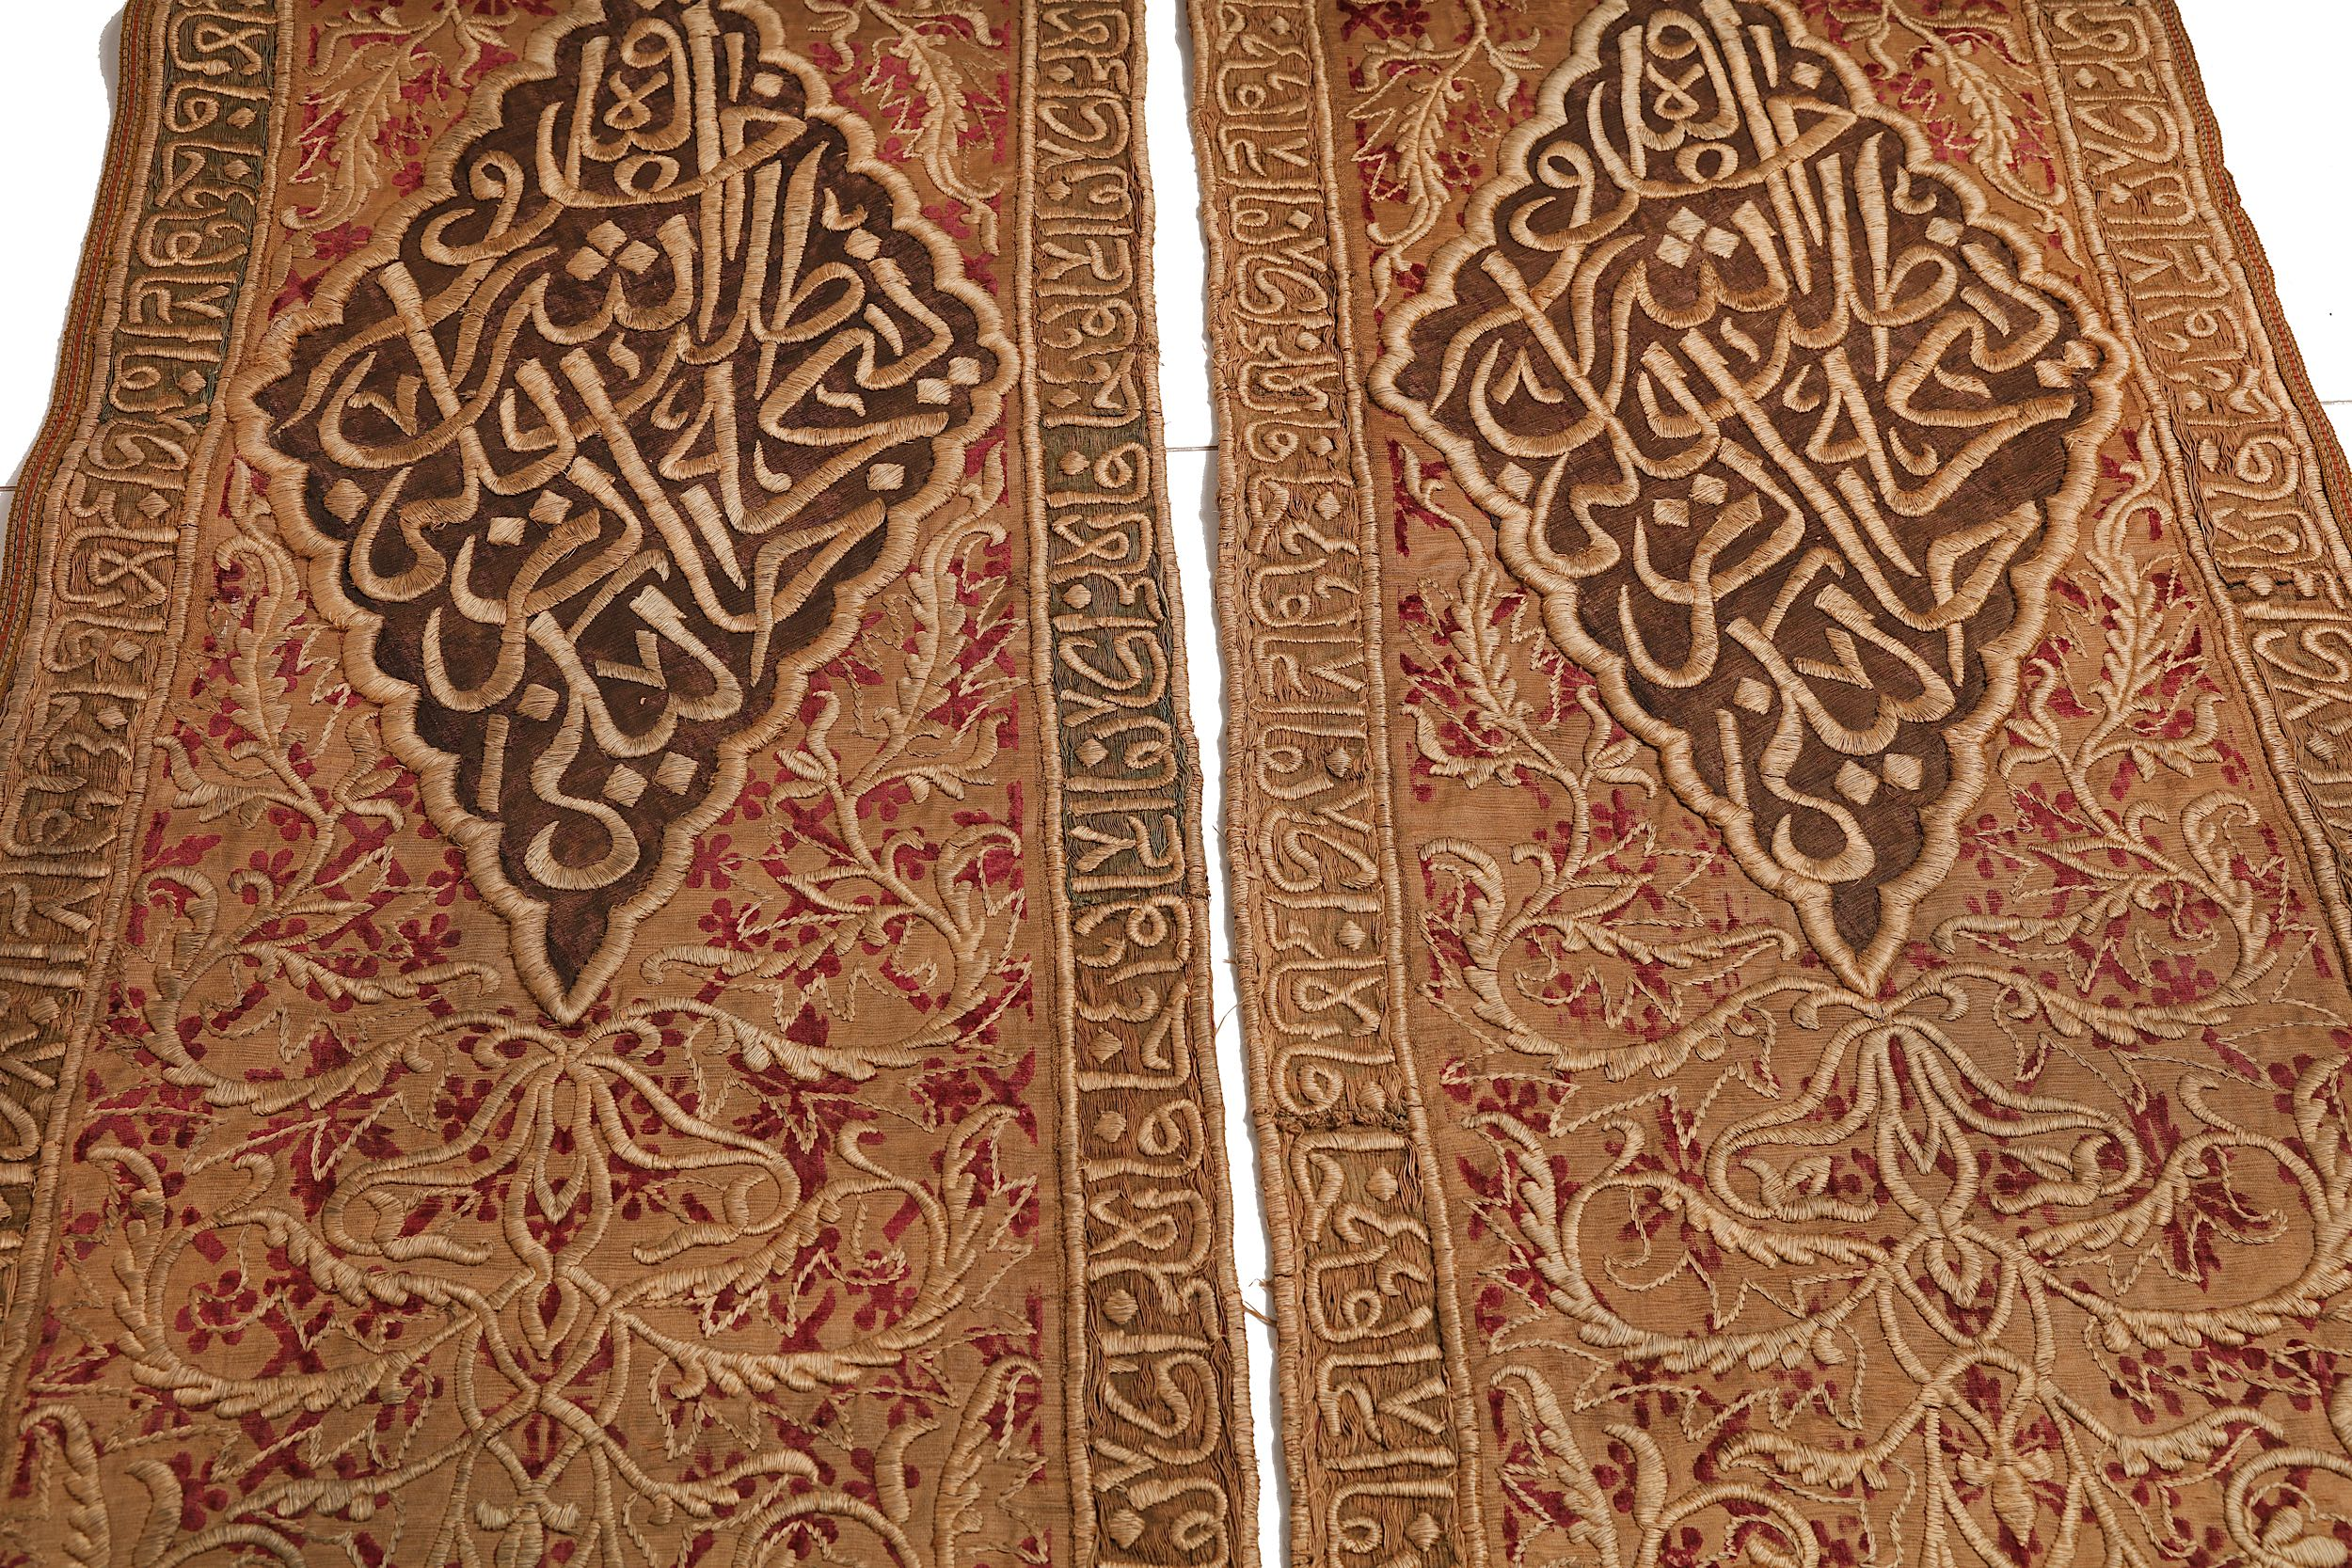 Lot 43 - TWO EMBROIDERED VELVET WALL HANGINGS.